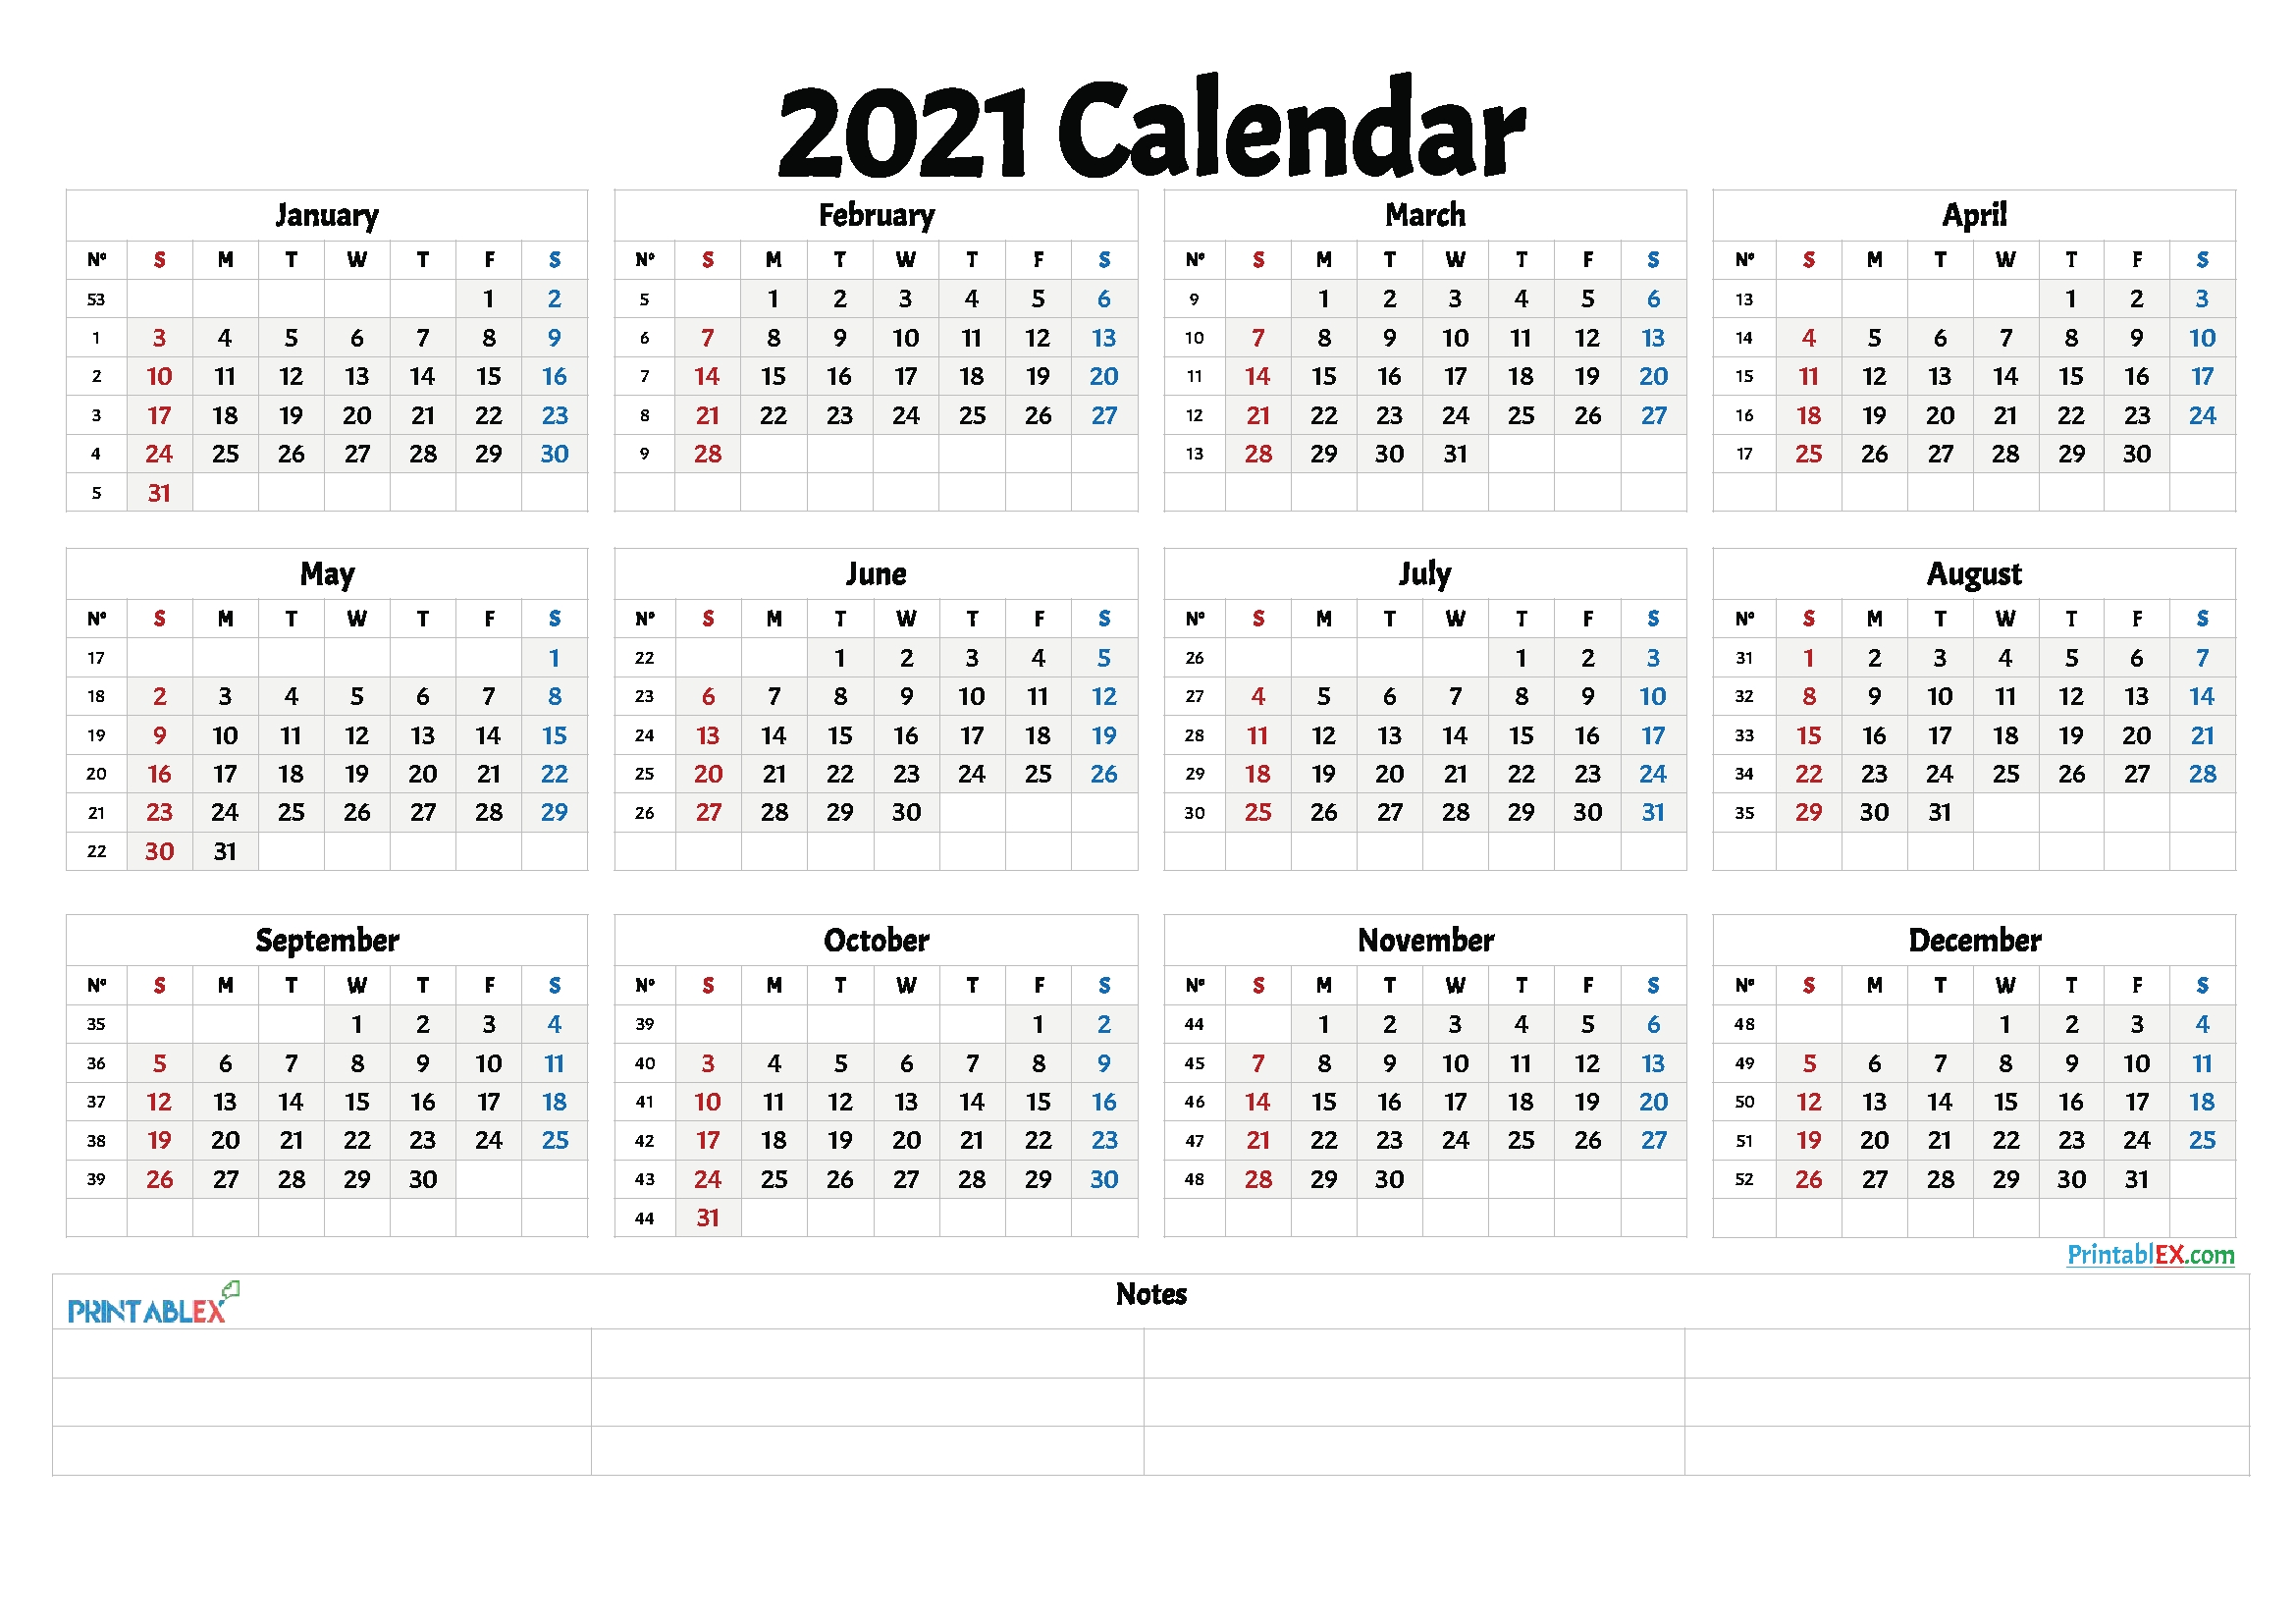 Free Printable 2021 Yearly Calendar With Week Numbers  2021 Calendar Free Printable Bills